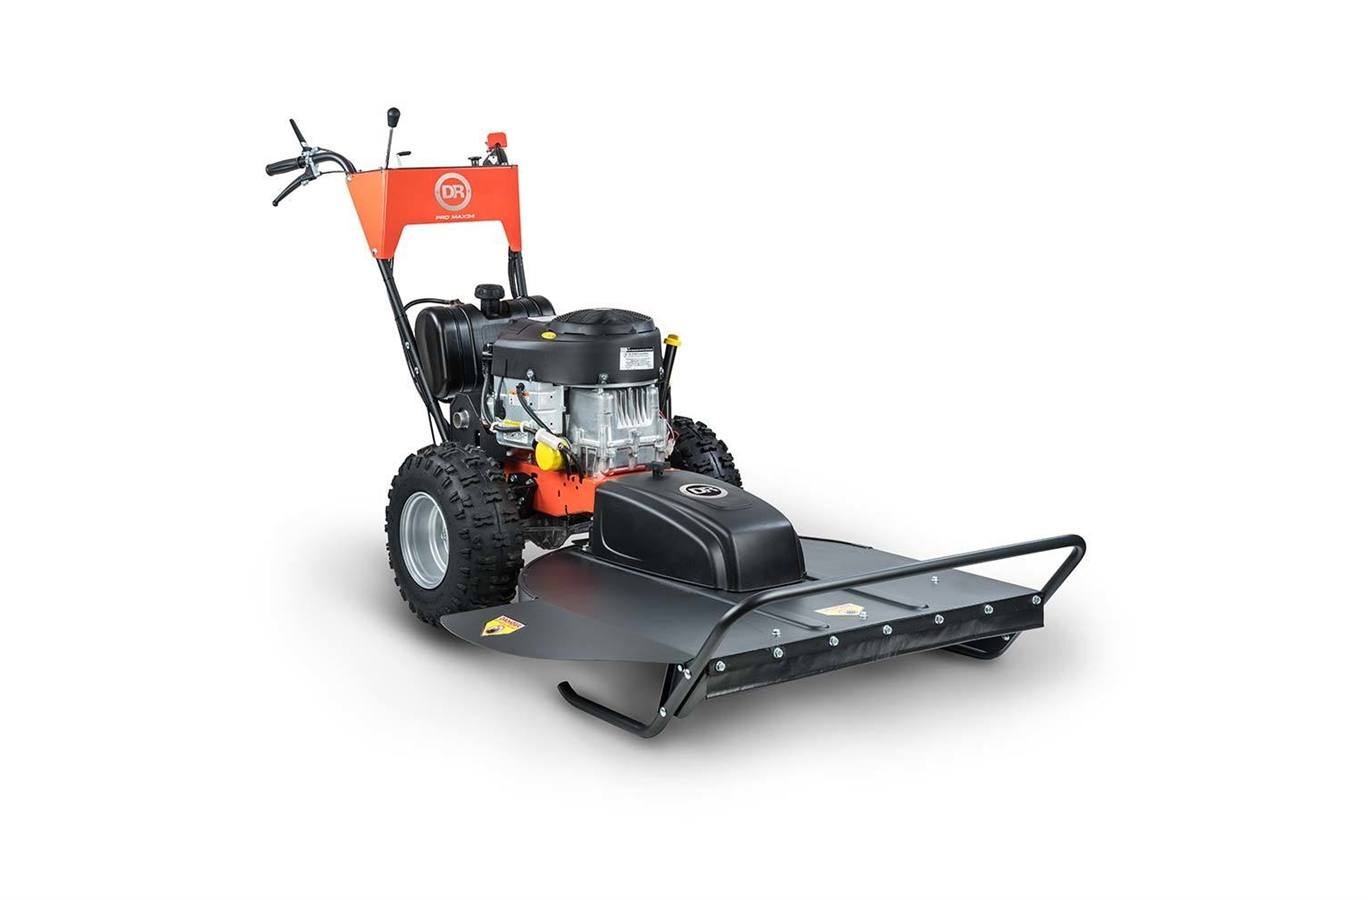 2020 Dr Power Dr Field And Brush Mower At47134ben For Sale In Staten Island Ny Trimalawn Equipment Staten Island Ny 718 761 5166